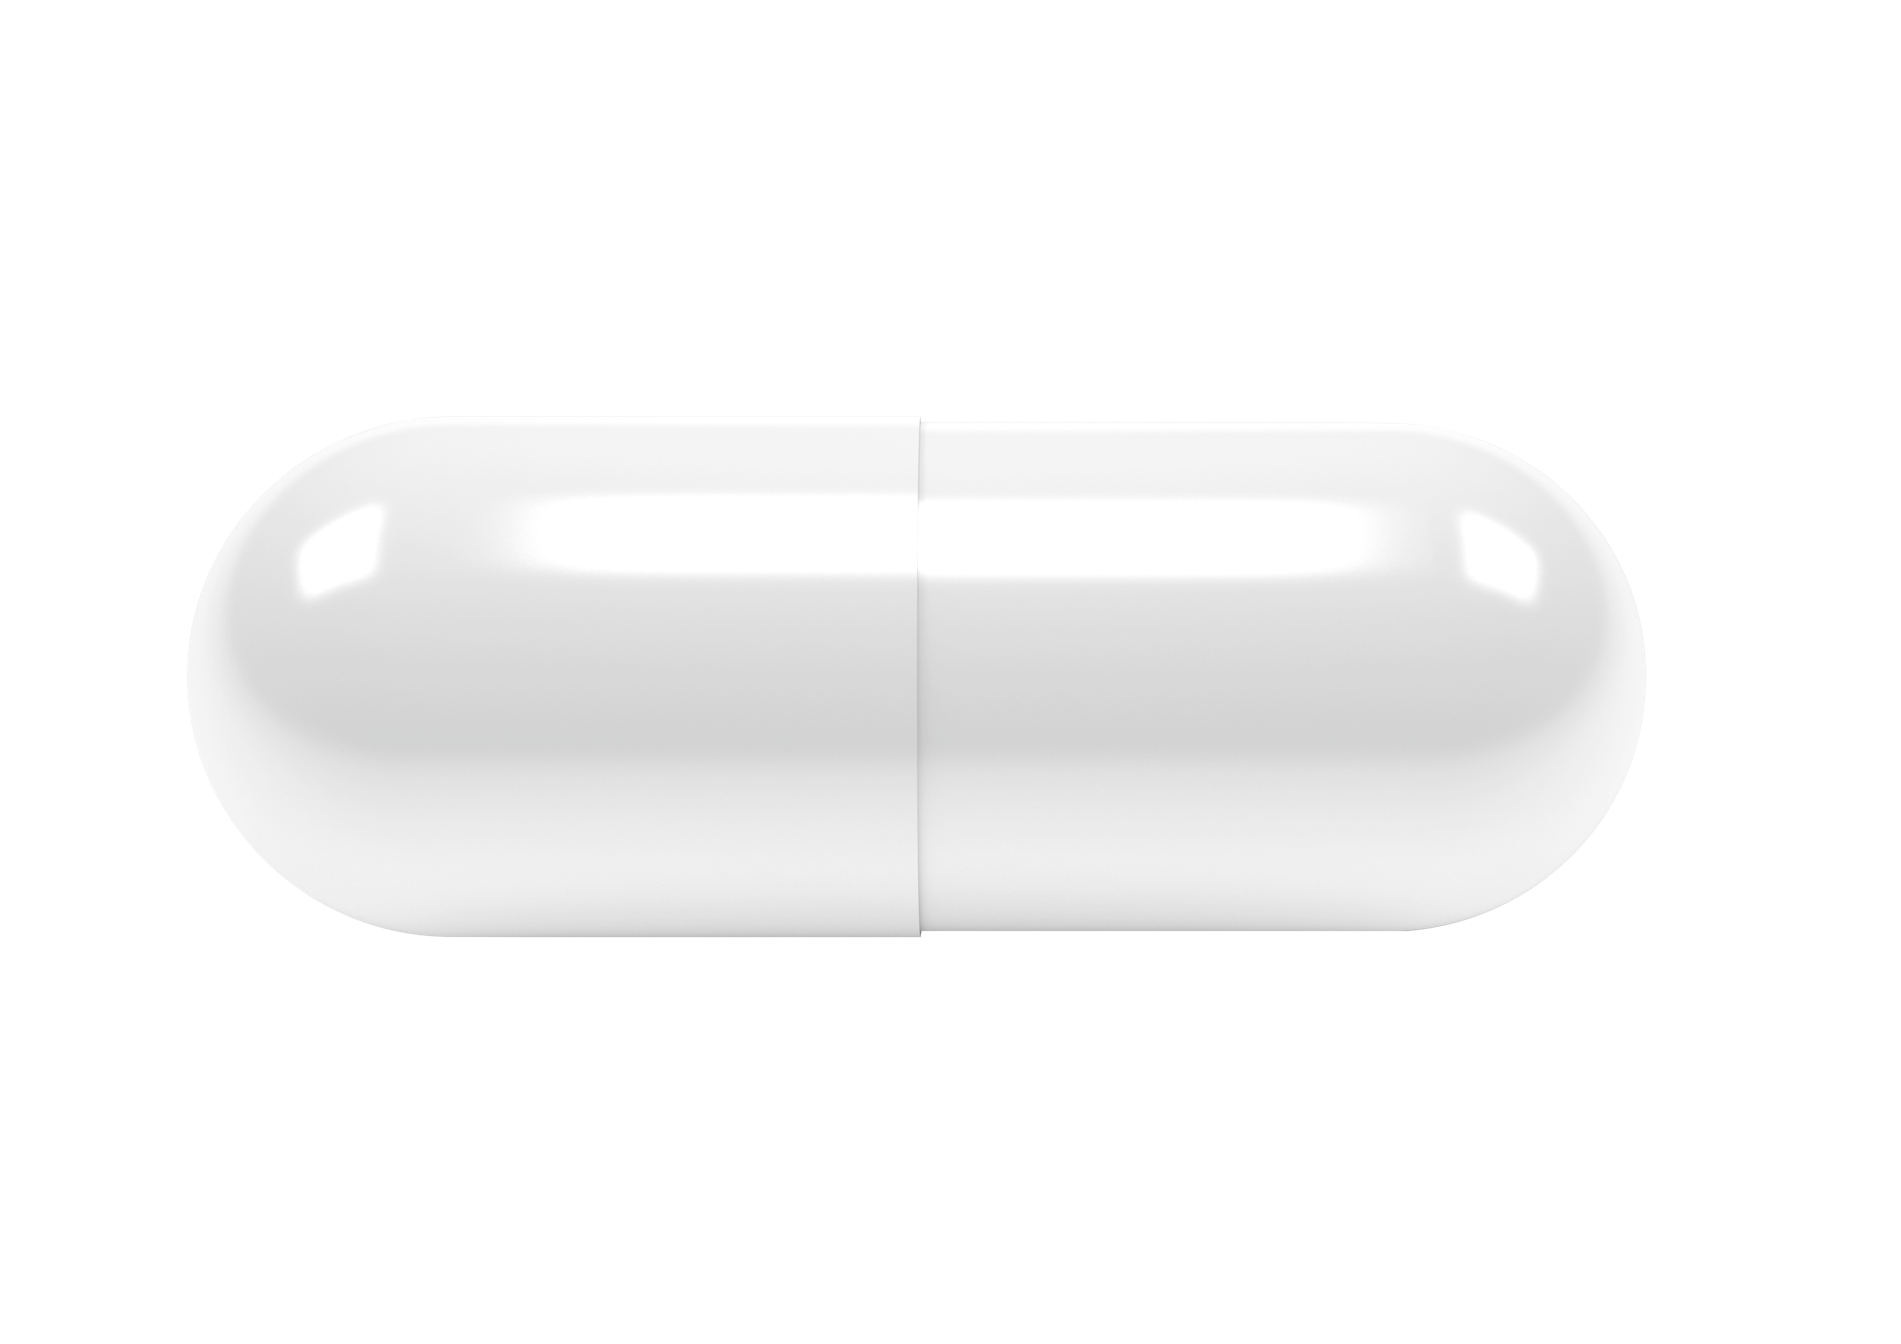 White pill png. Build your own capsule